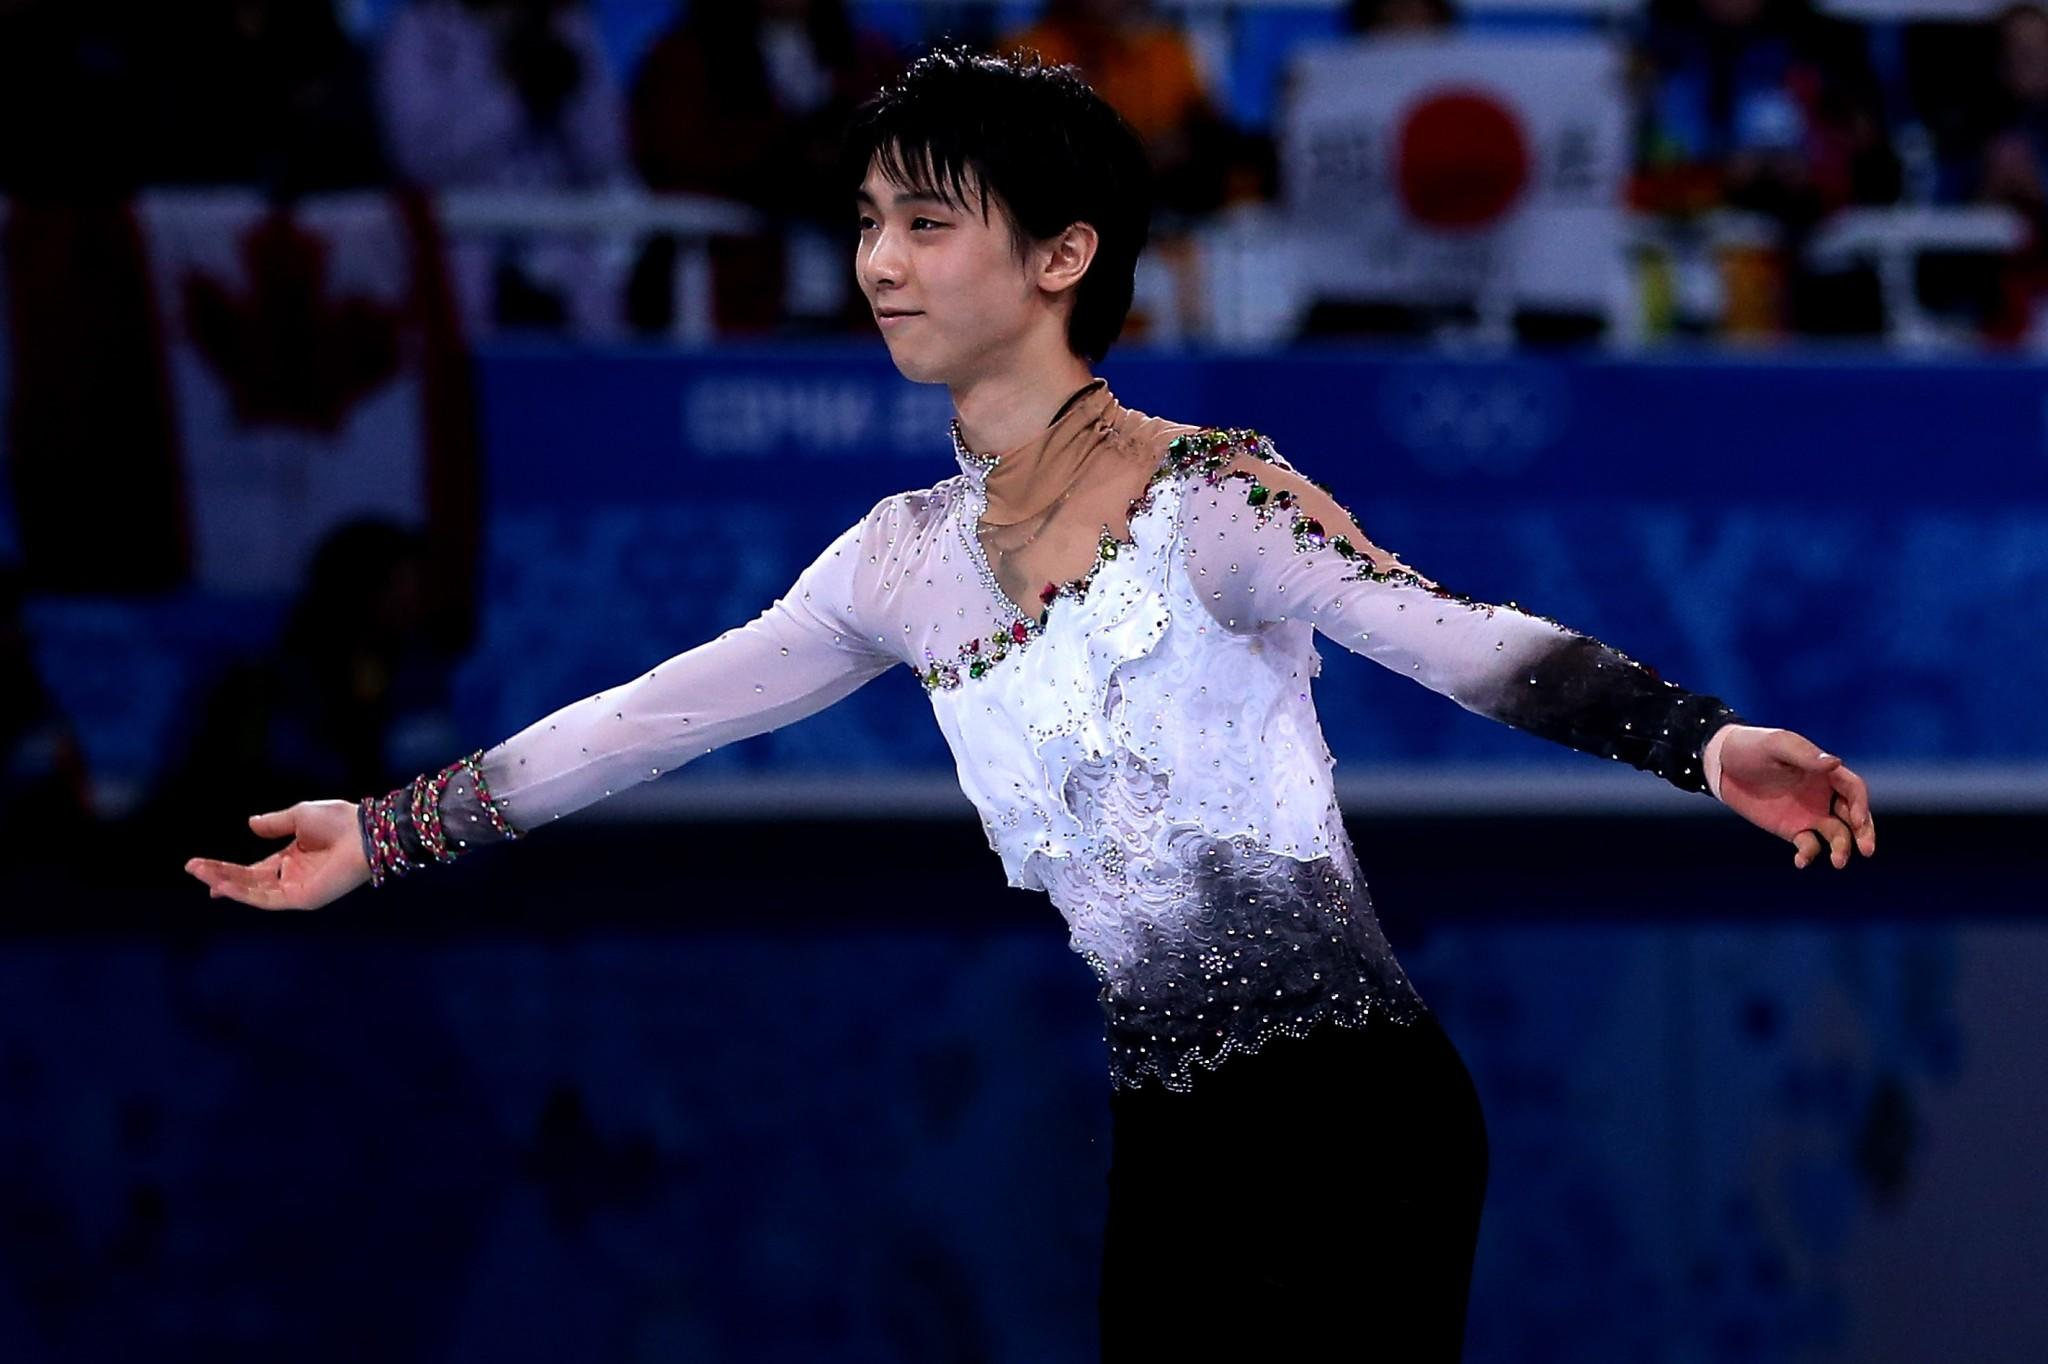 Yuzuru Hanyu of Japan celebrates after winning the gold medal Friday.